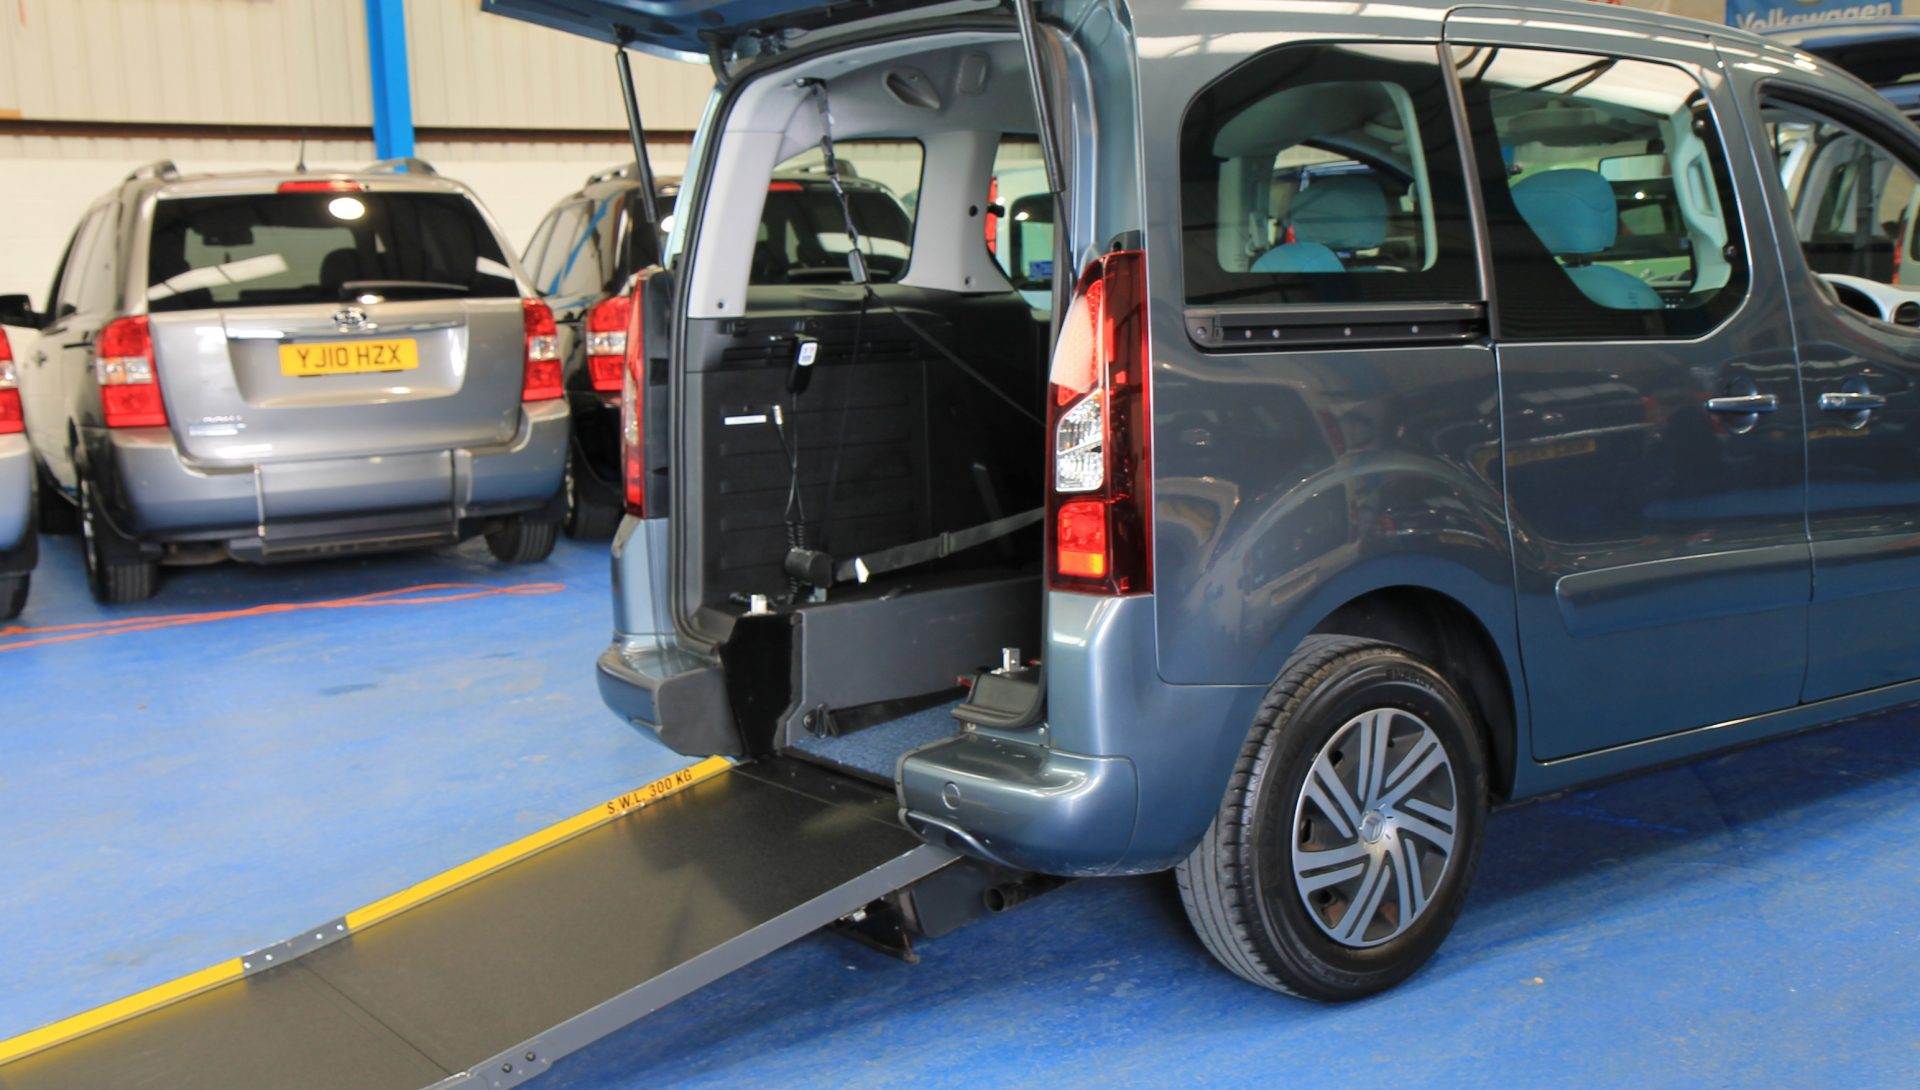 Berlingo Wheelchair access vehicle wa62jvm